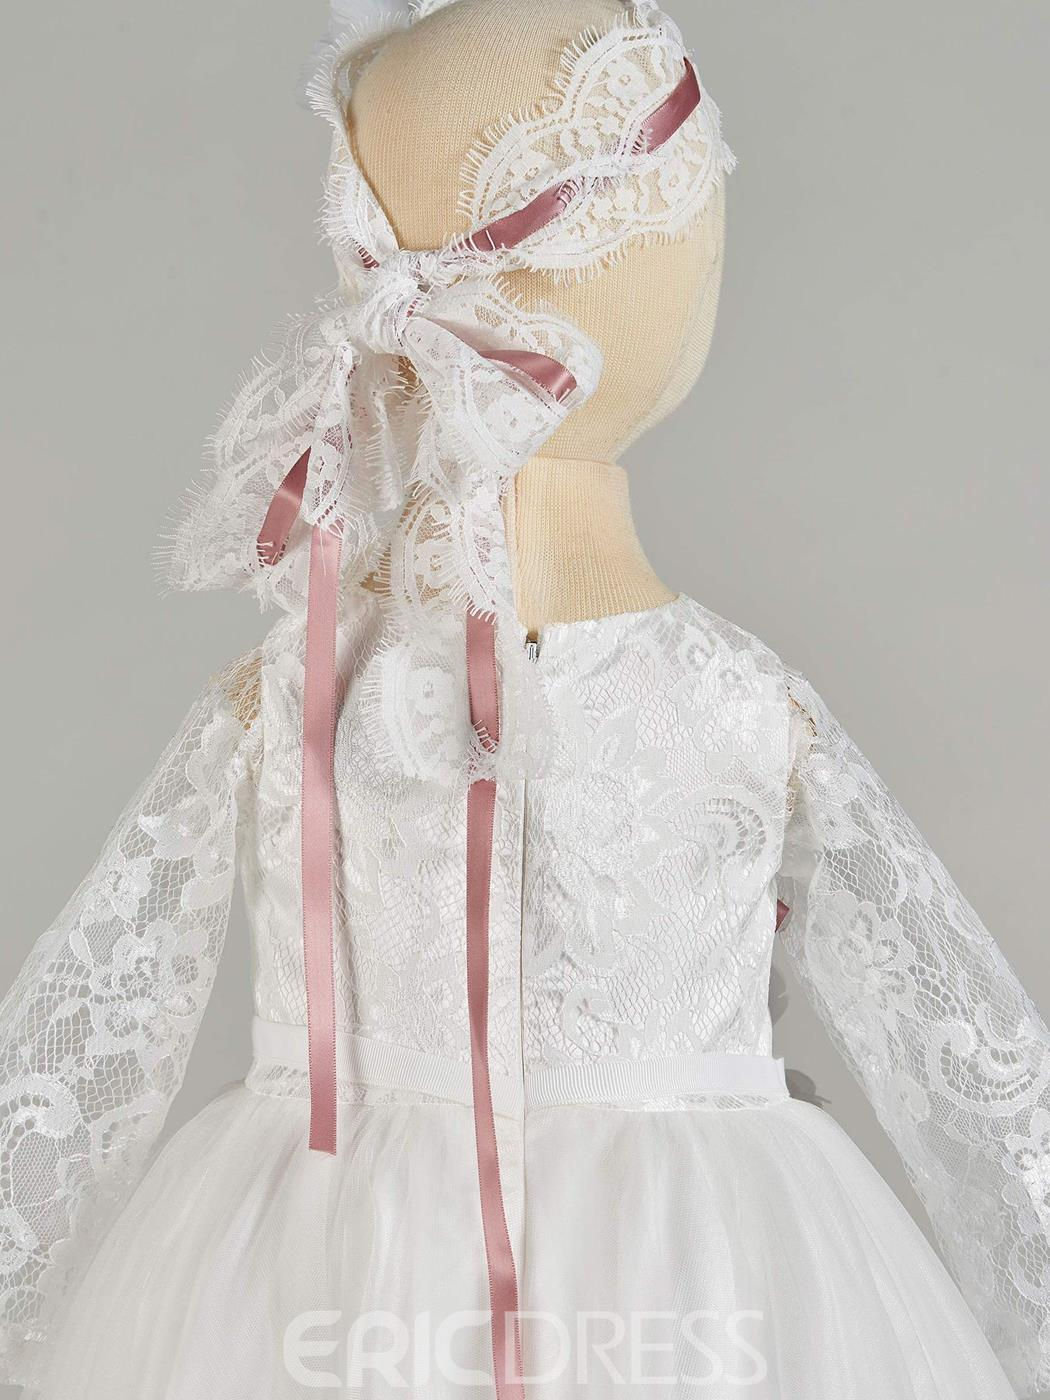 Ericdress Long Sleeve Lace Baby Girl's Christening Gown